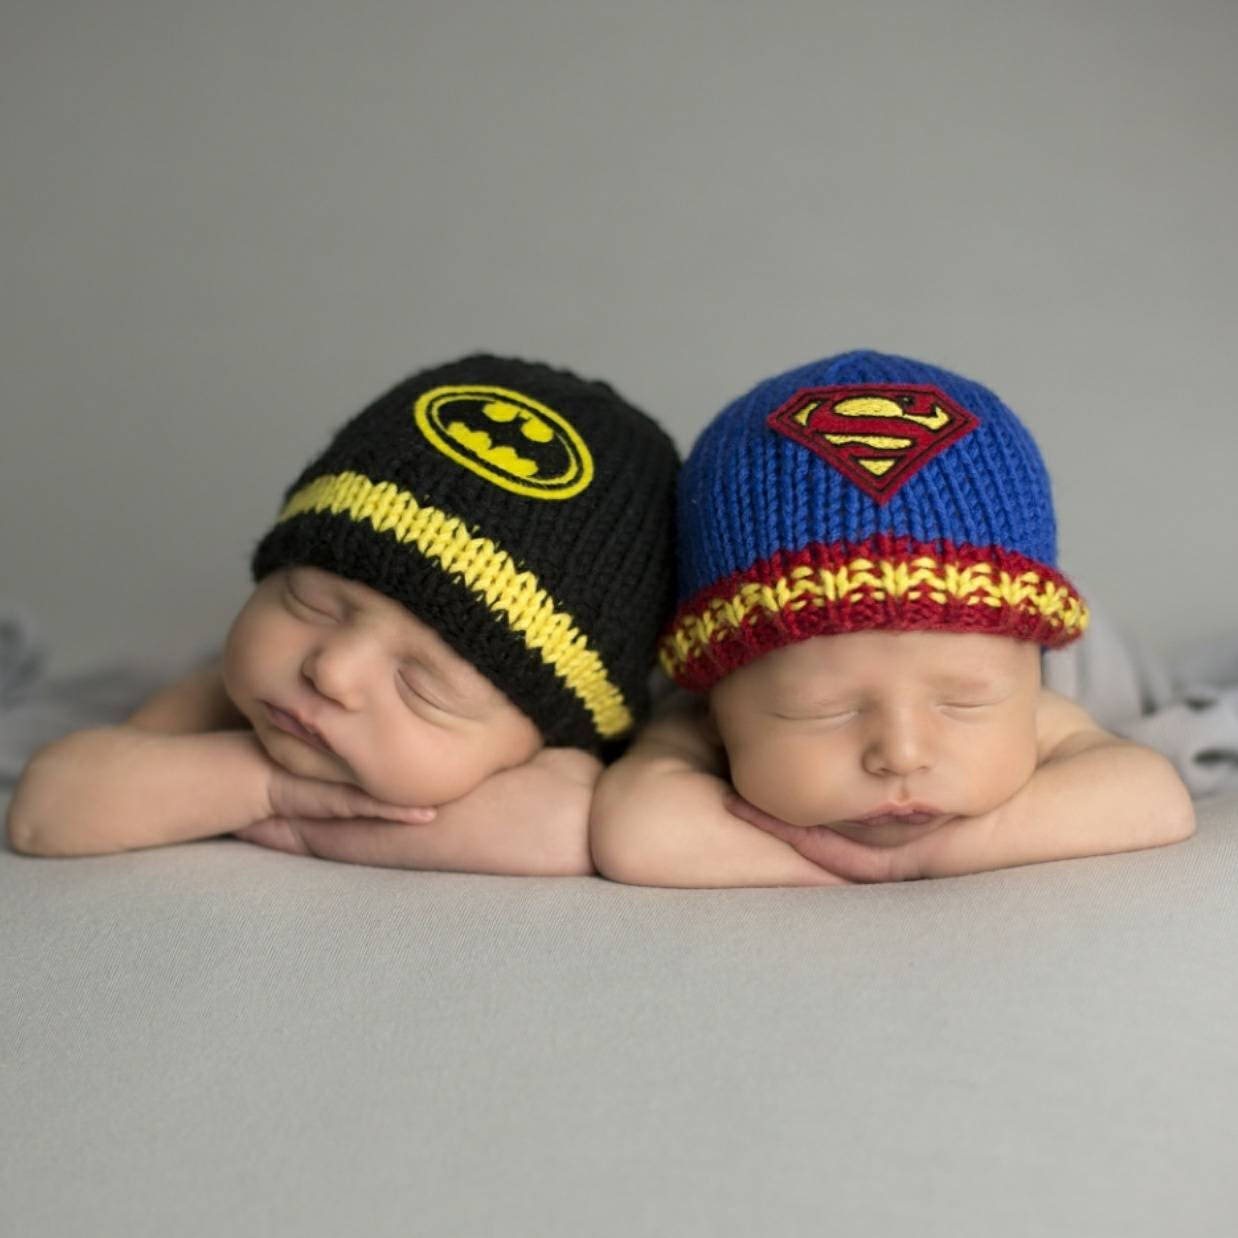 56007367ca3 Newborn Twin Baby Hats Twin Boys Baby Gift Baby Superman